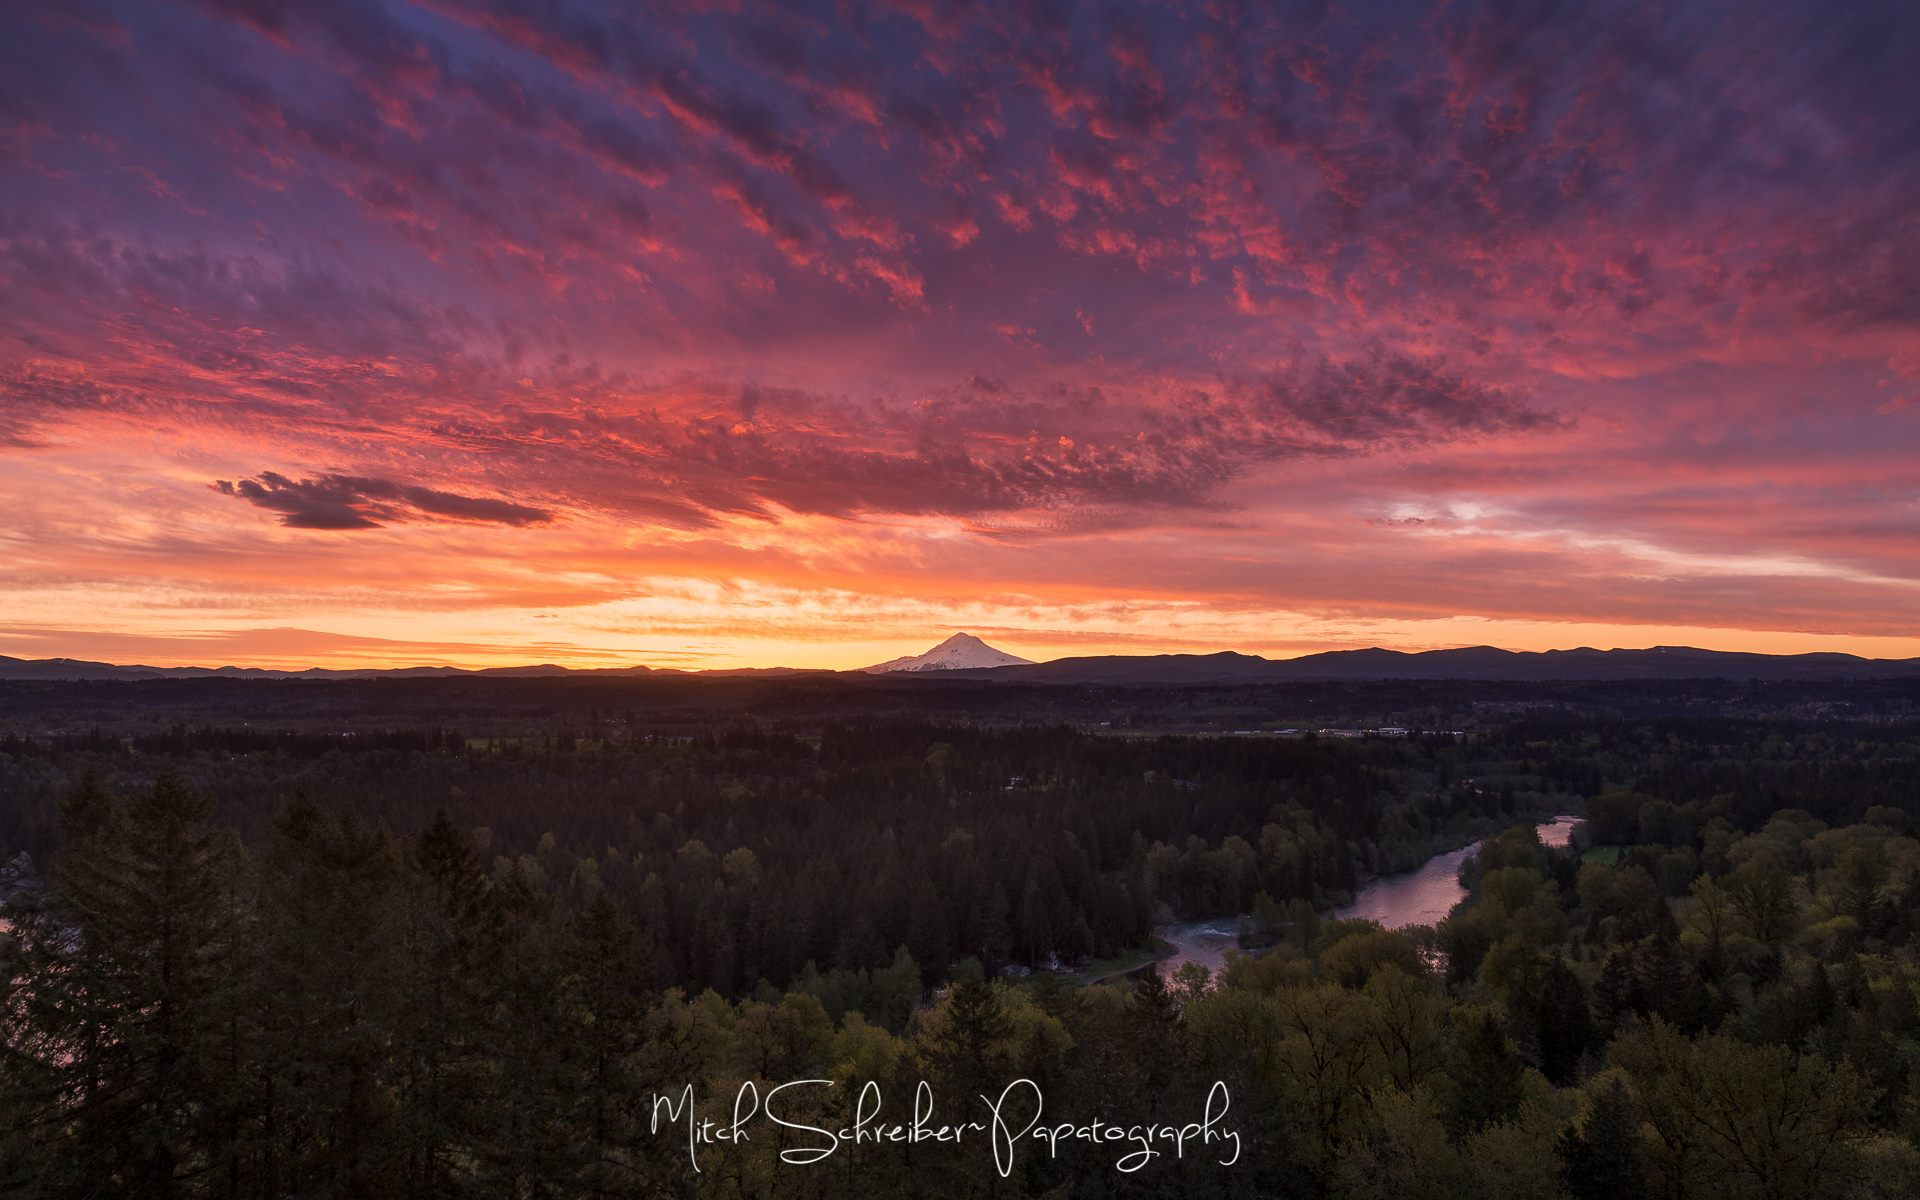 Mt. Hood at Sunrise from Mitch Schreiber Photography